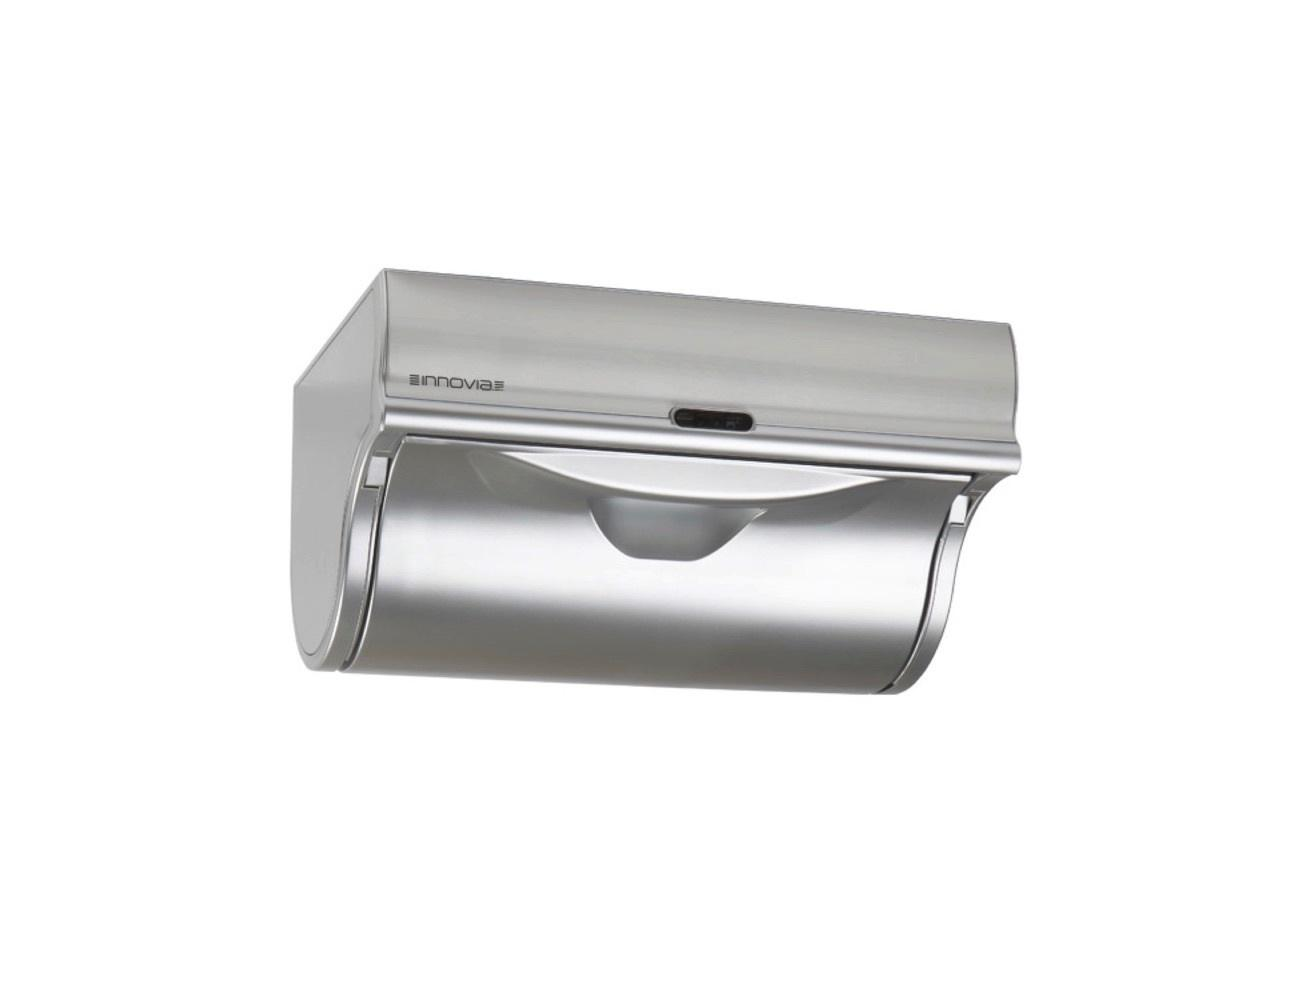 Innovia Under Cabinet Paper Towel Dispenser